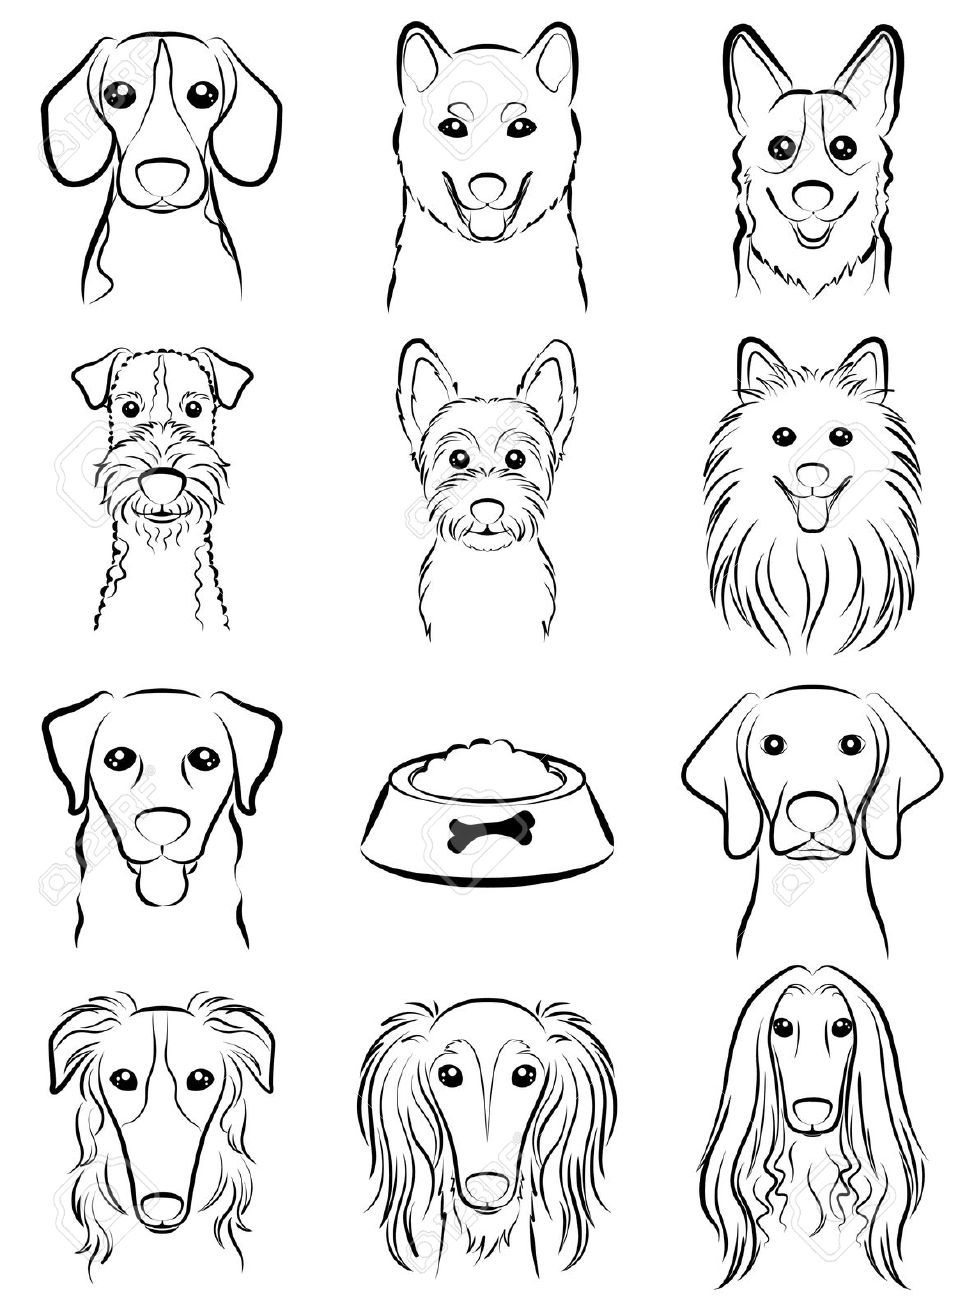 Line Drawing Of A Dog : Dog line drawing royalty free cliparts vectors and